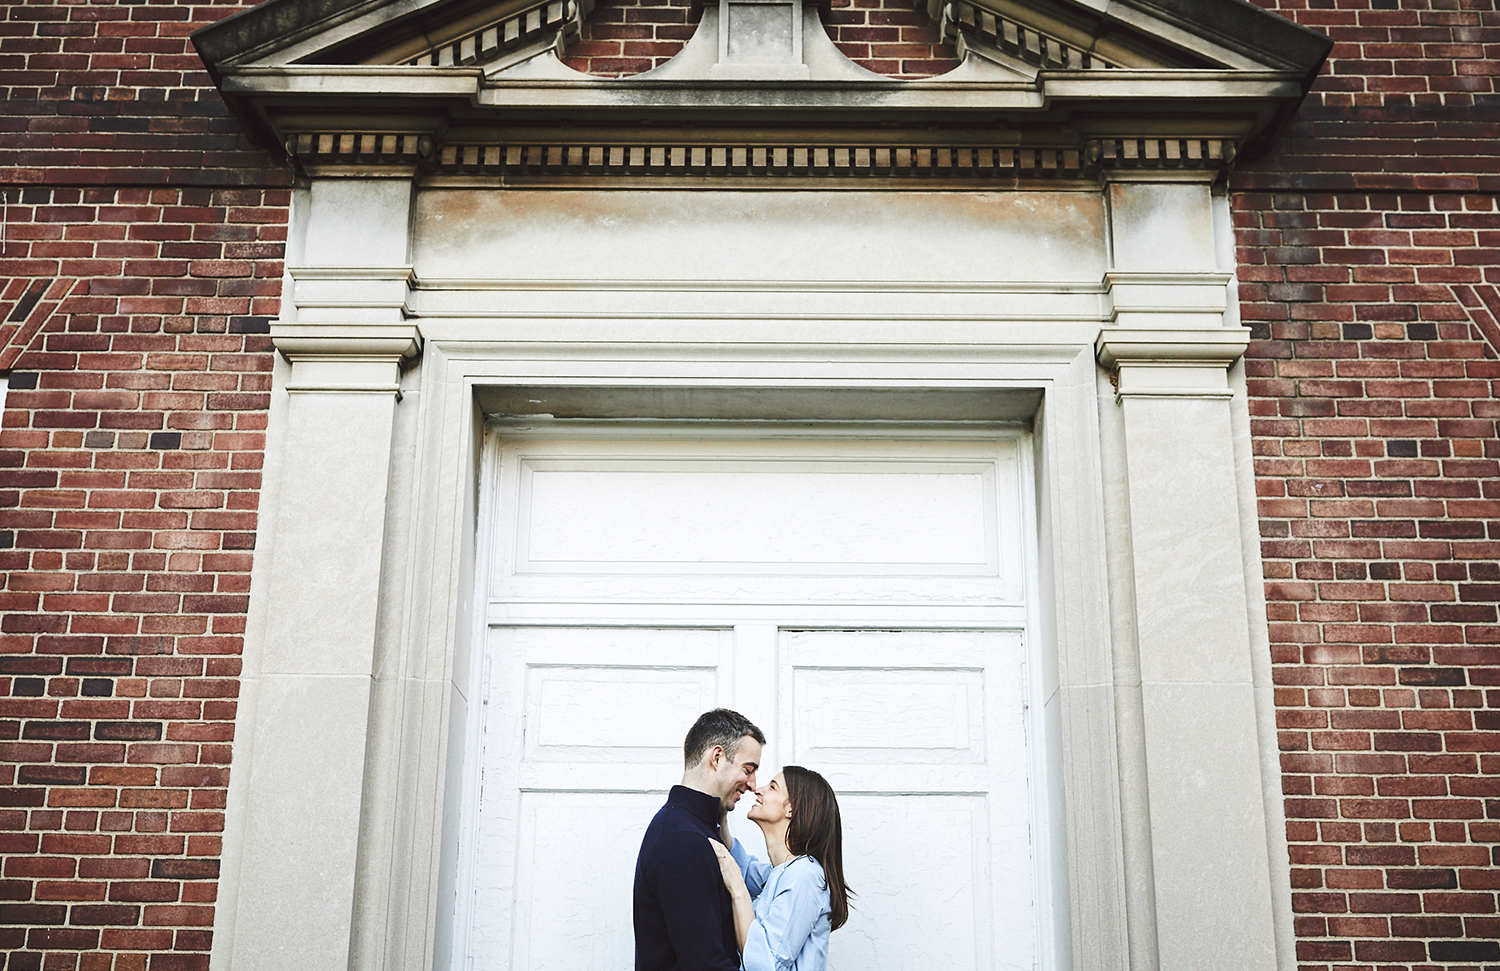 180422_StevensInstitureofTechnologyEngagementPhotography_HobokenEngagement Photography_By_BriJohnsonWeddings_0005.jpg